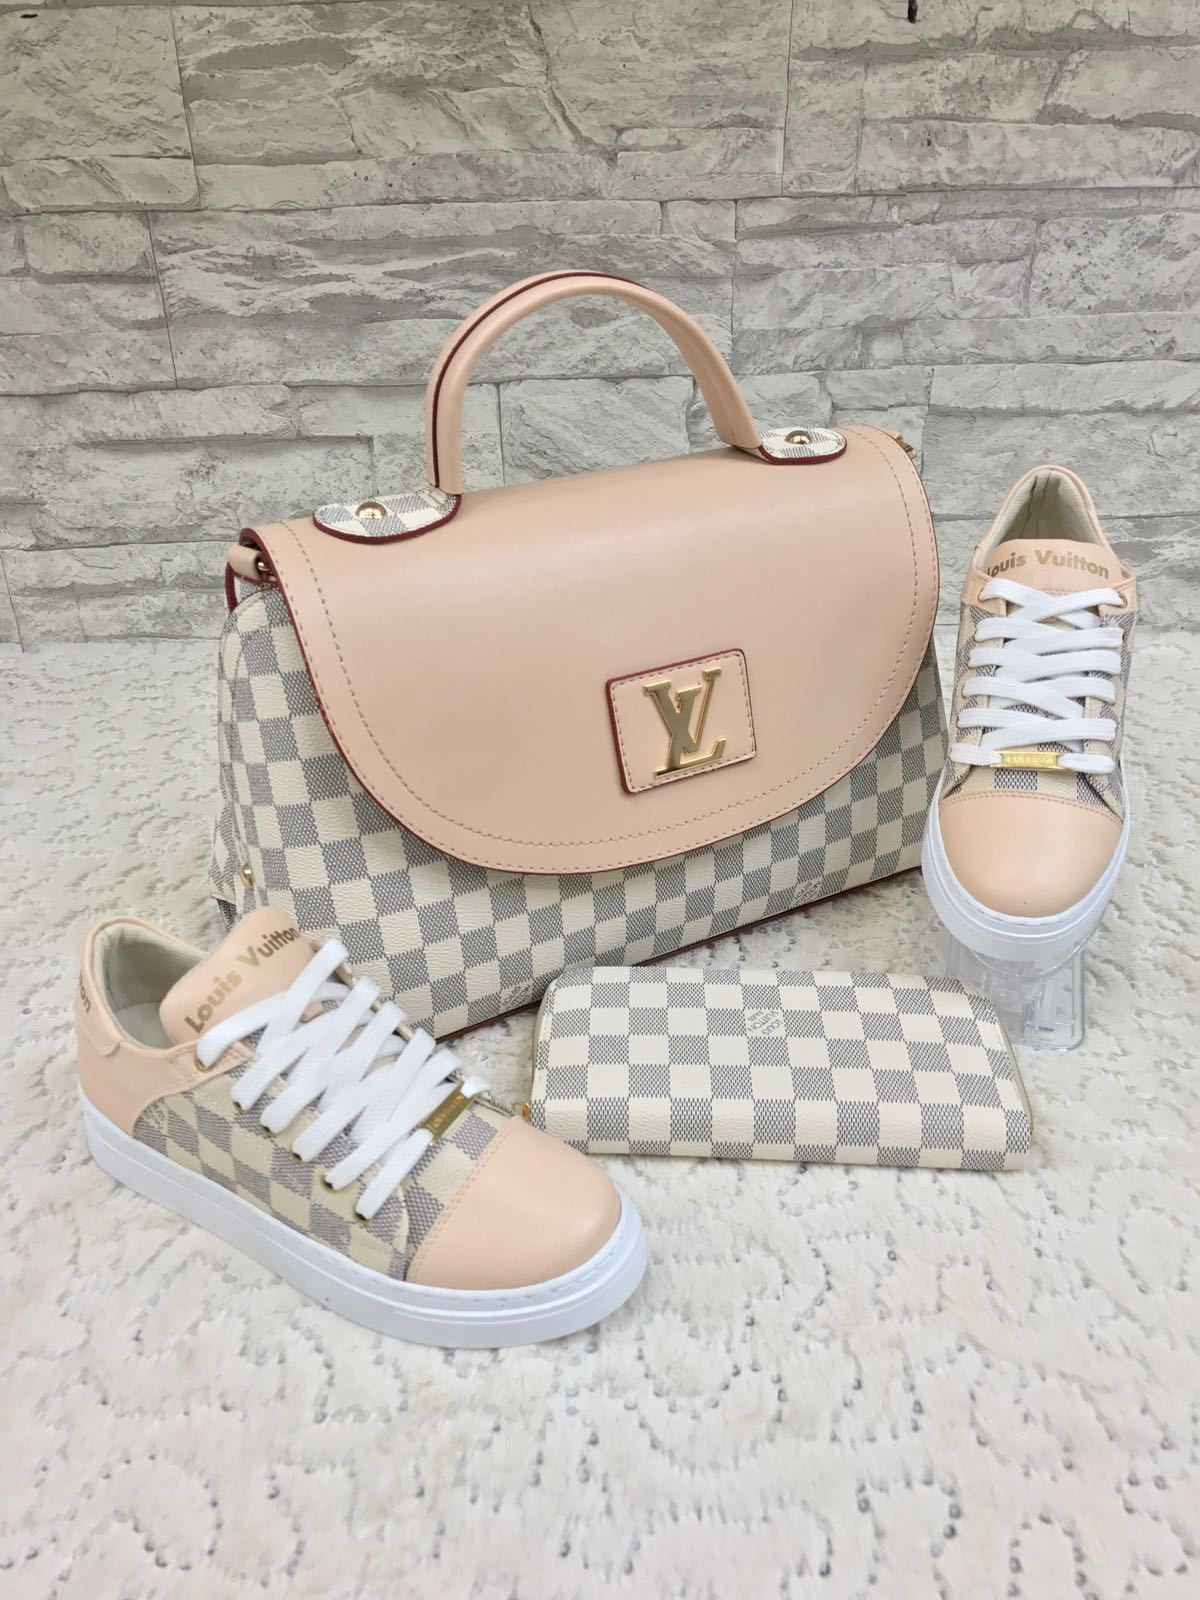 louis vuitton bag and matching shoes